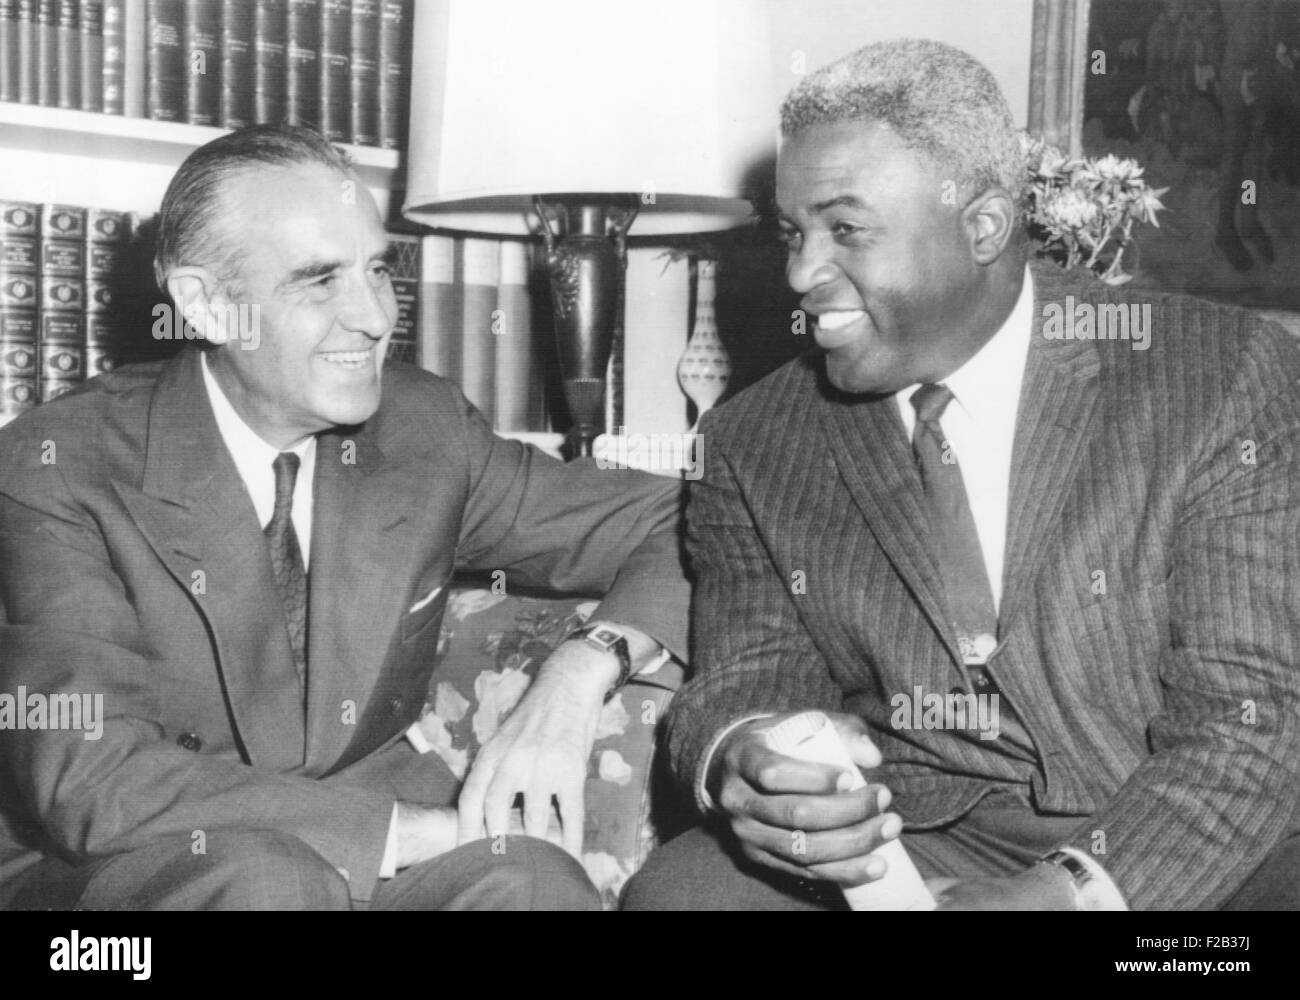 New York's governor Averill Harriman meets with Jackie Robinson. The first African American player in major league - Stock Image